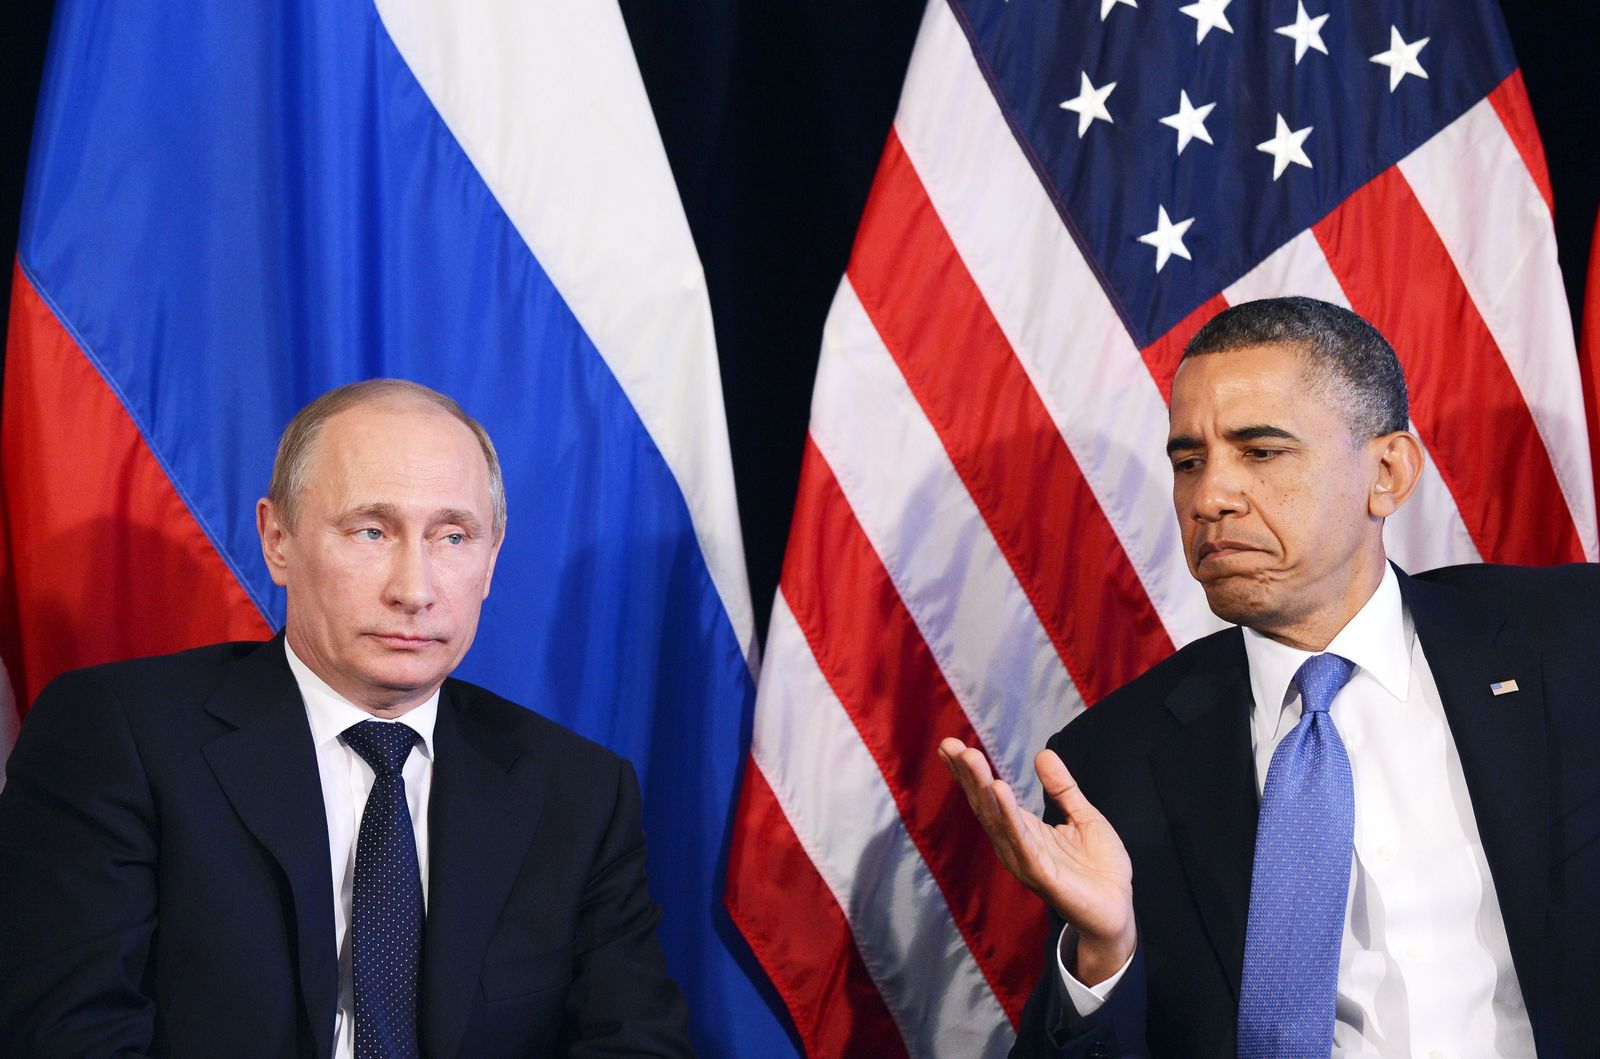 Putin/ Obama G20-Gipfel / Mexiko